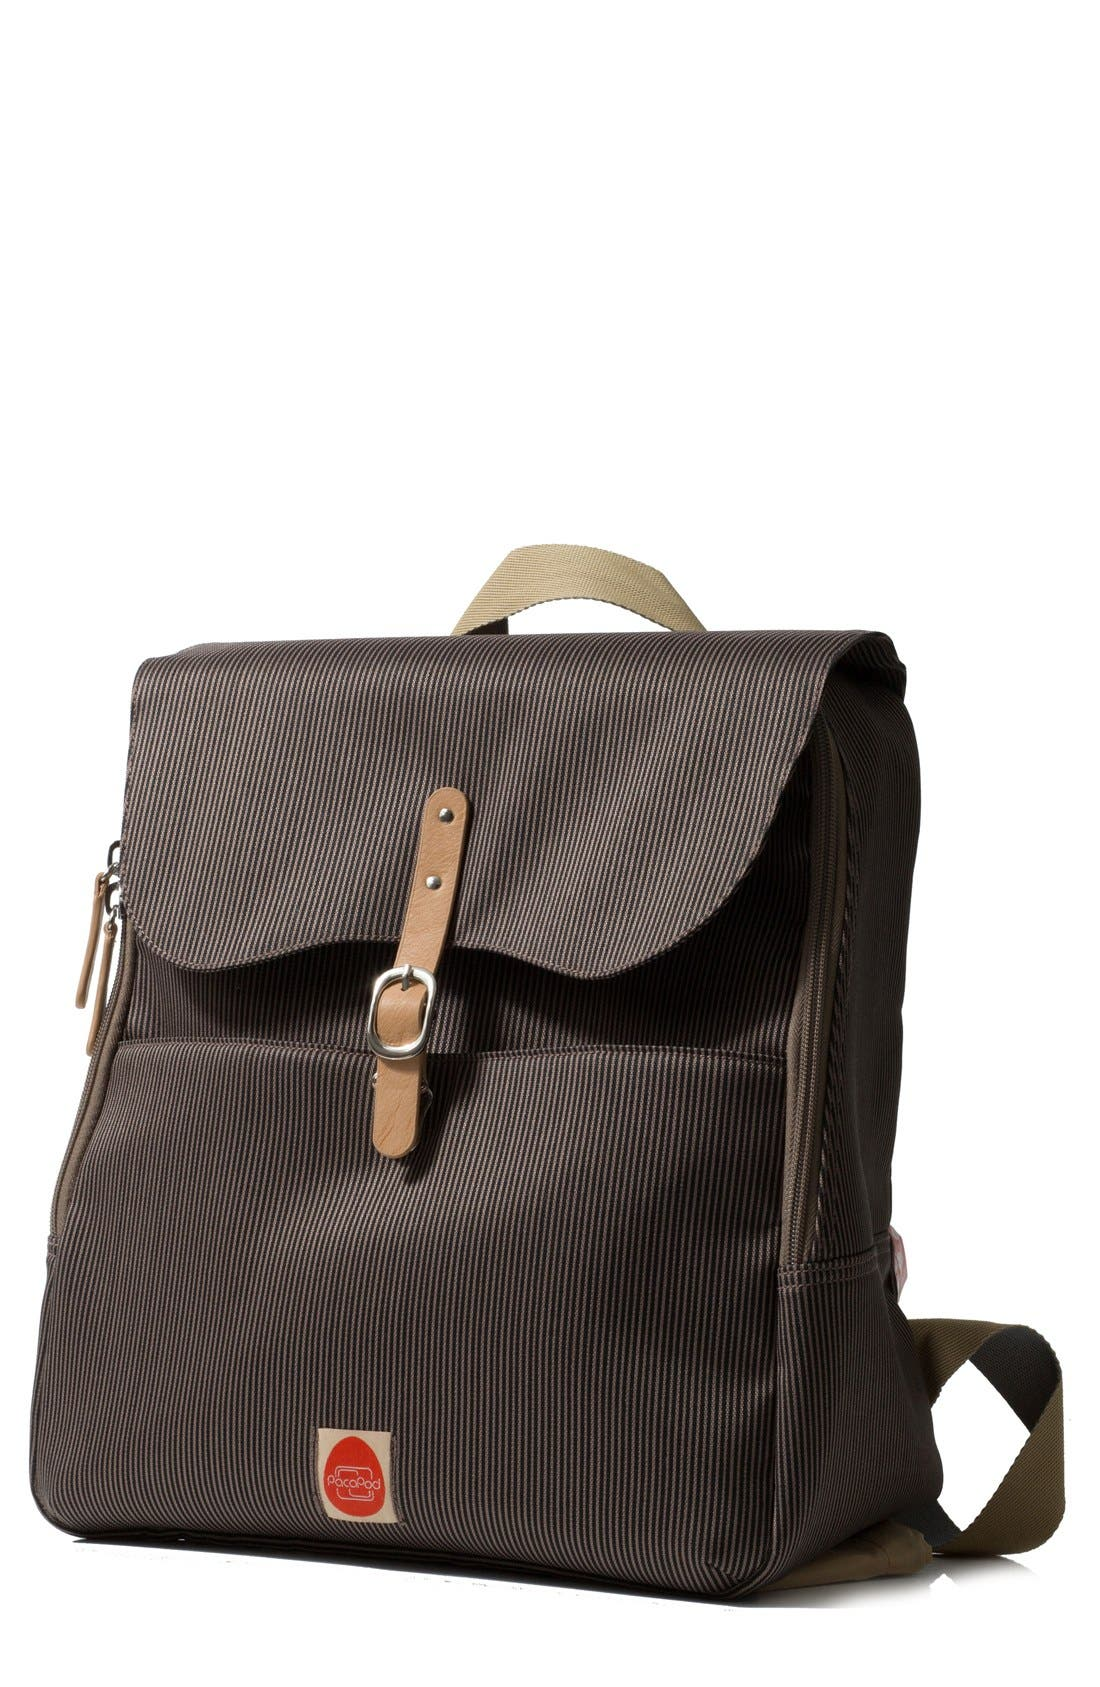 PACAPOD 'Hastings' Diaper Bag